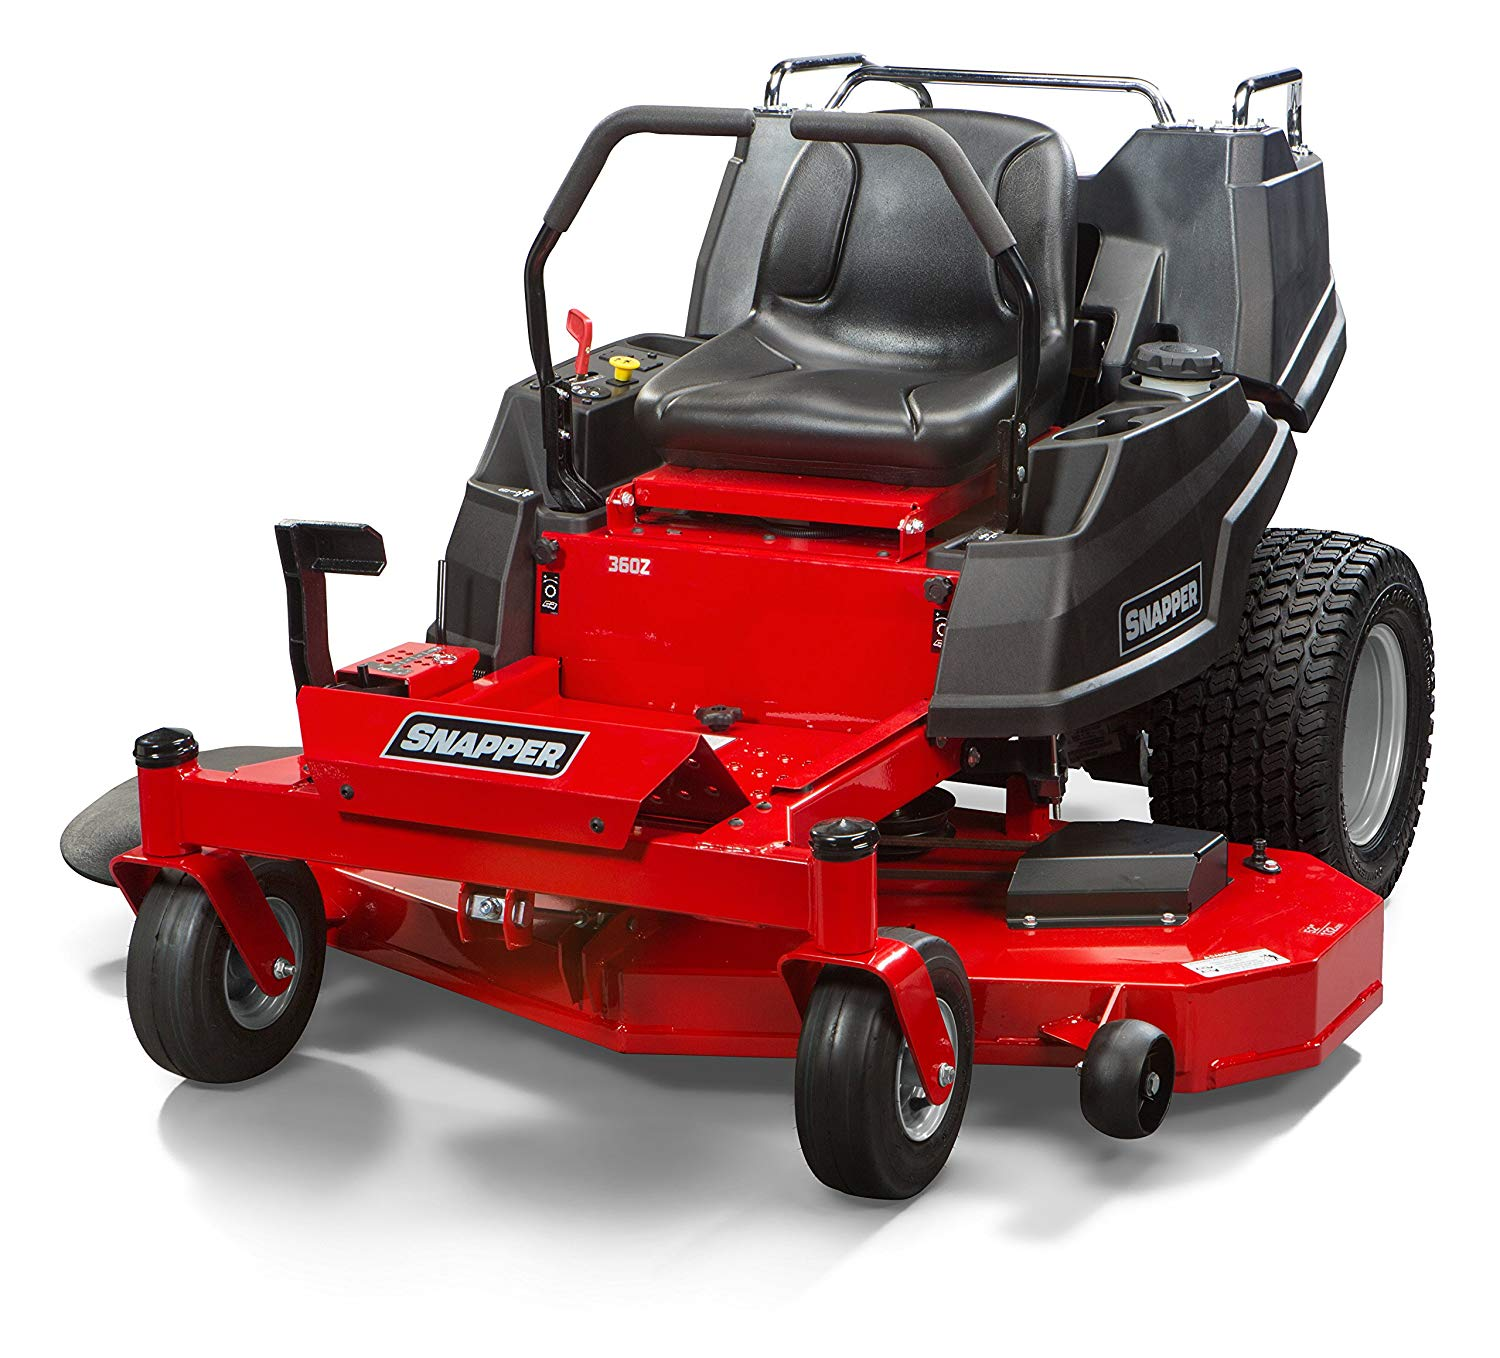 5 Best Zero Turn Mowers Dec 2019 Reviews Amp Buying Guide